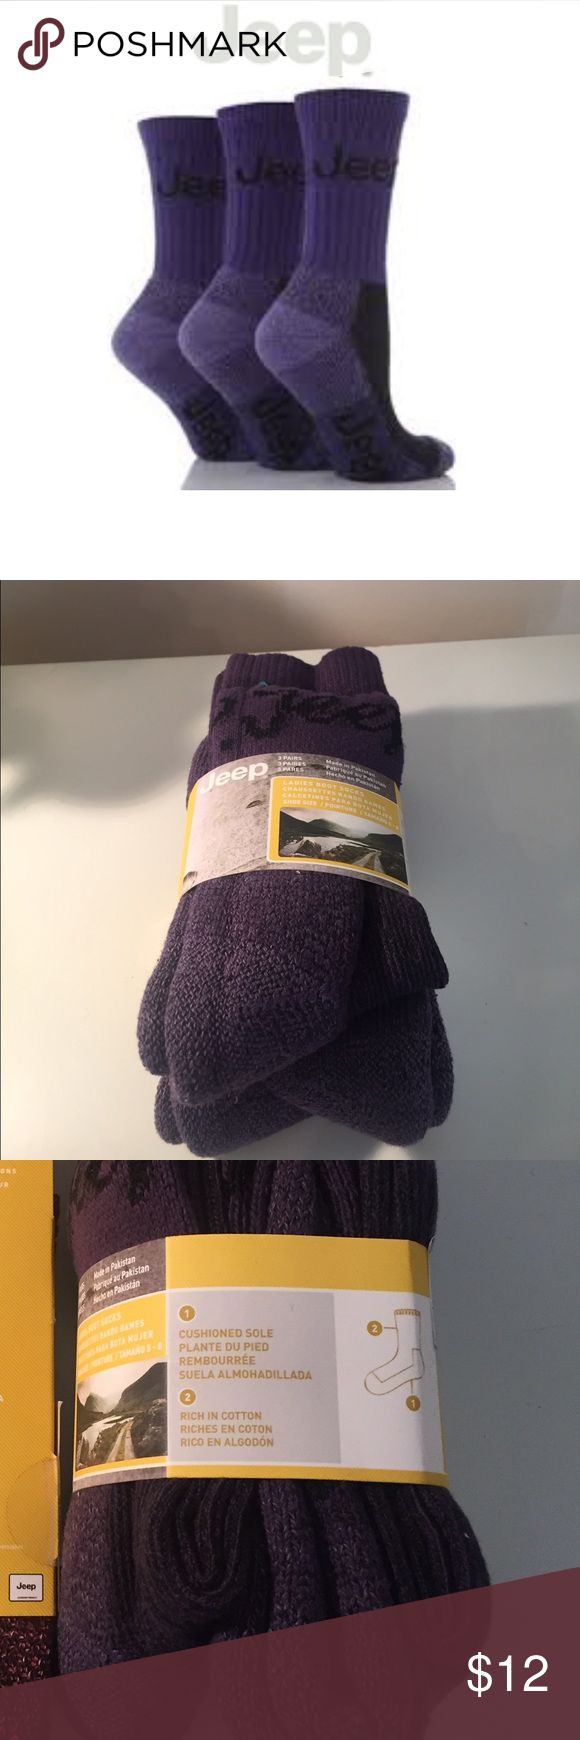 JEEP Boot Socks NEW 3 Pack Purple Warm Sz 5-8 JEEP Boot Socks NEW 3 Pack Purple Heavy Warm Sz 5-8 cushioned sole , 73% cotton 22% polyester 3% nylon 2% spandex JEEP Accessories Hosiery & Socks